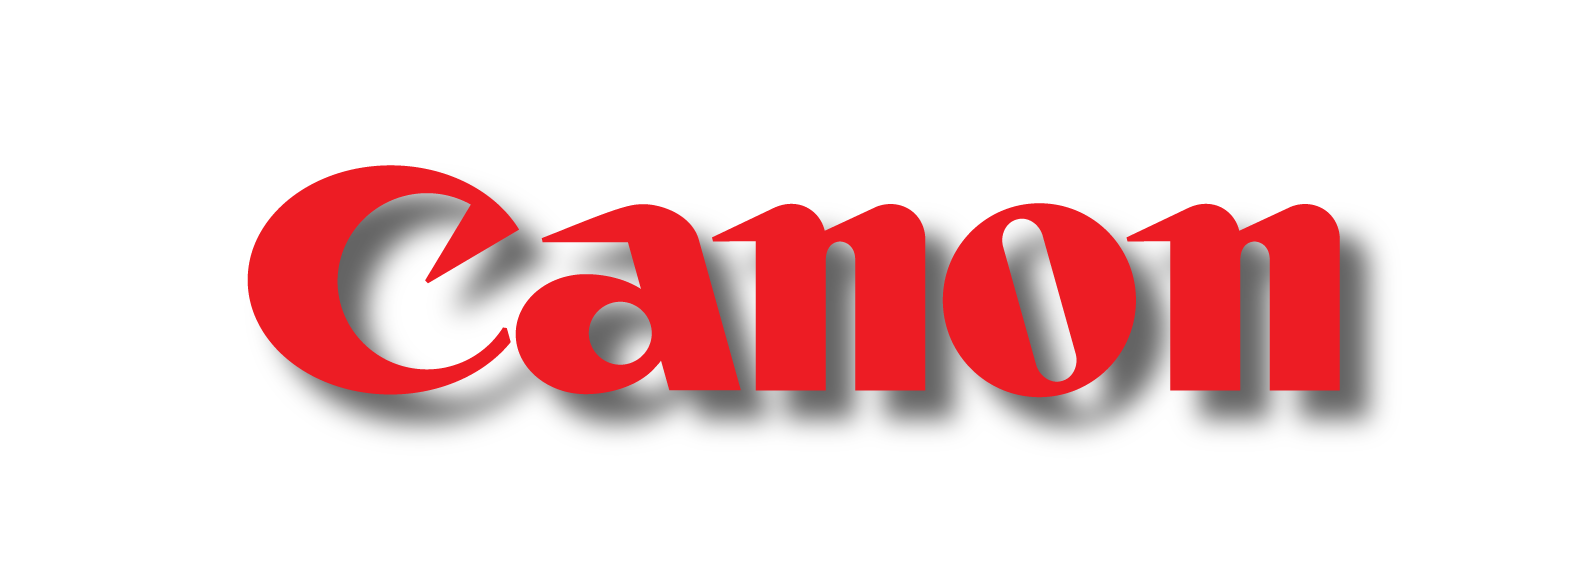 Canon_logo-5.png